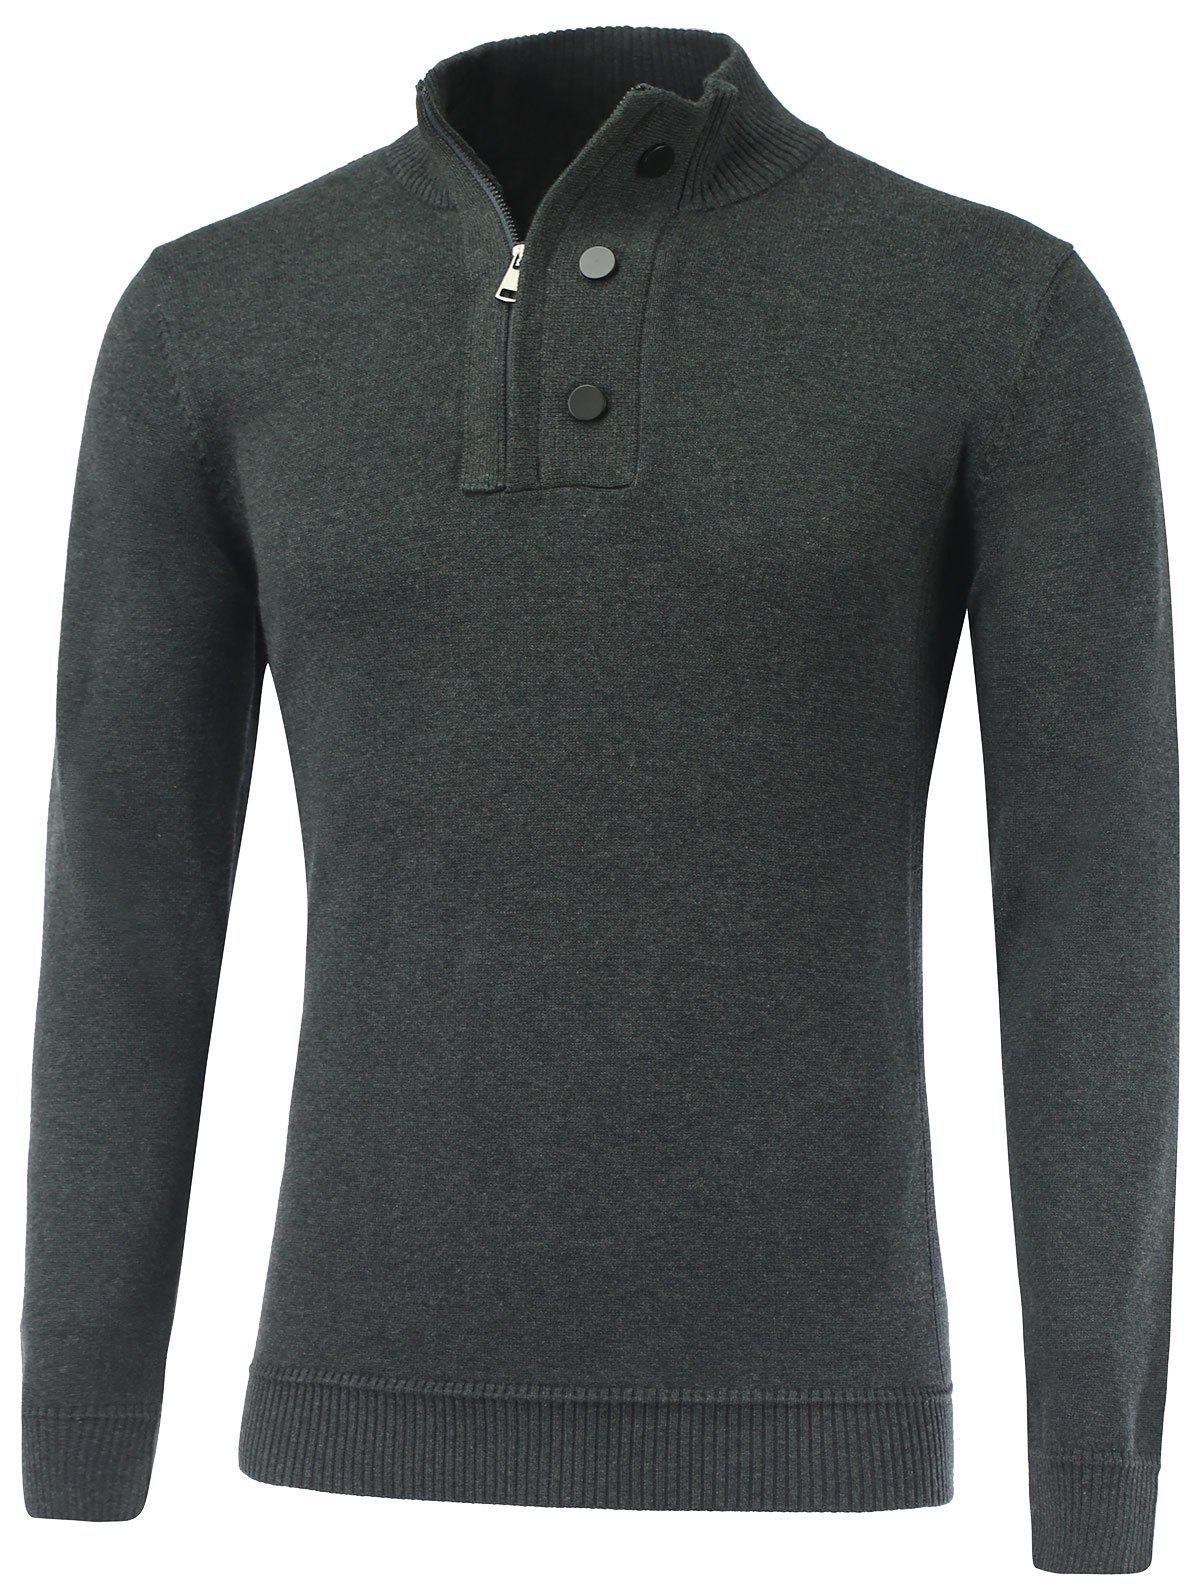 Ribbed Stand Collar Half-Zip Sweater - DEEP GRAY XL